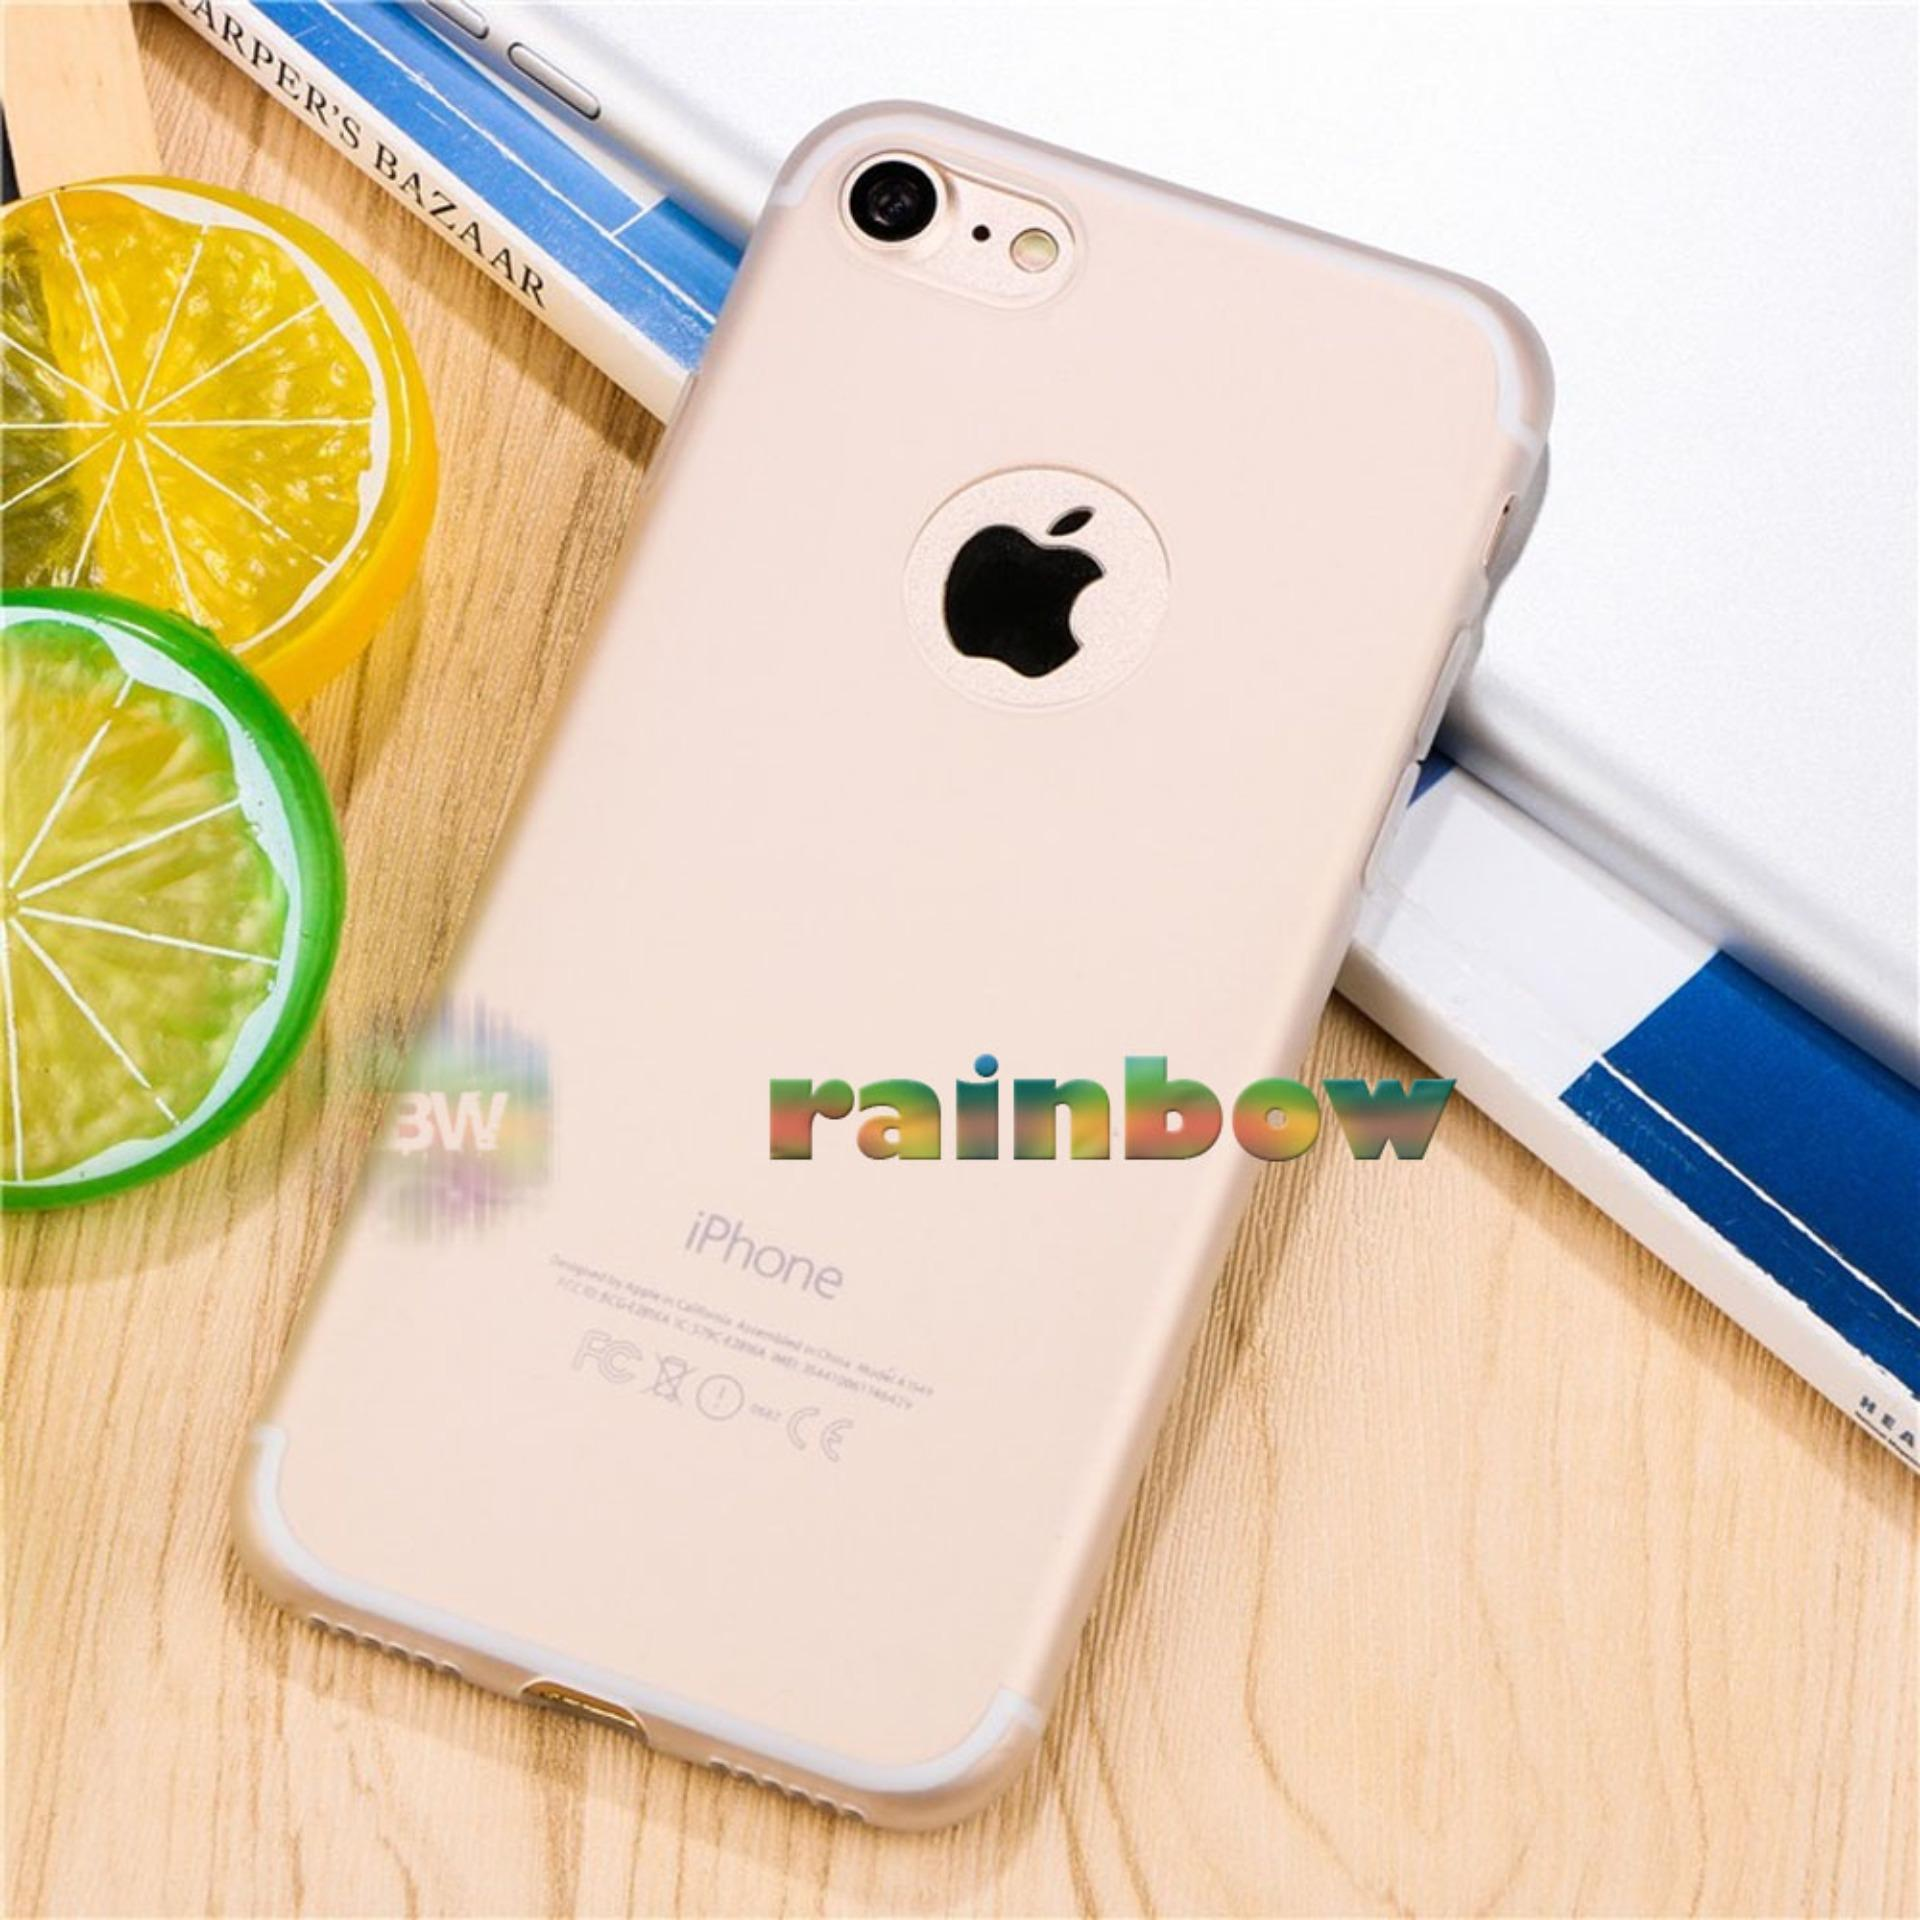 Lize Apple Iphone5 / Iphone 5 / Iphone 5G / Iphone 5S Ori / Softshell / Jelly Case / Soft Case / Soft Back Case / Silicone / Silicon / Silikon / Case Iphone / Case HP / Casing Handphone Iphone 5 - Transparan